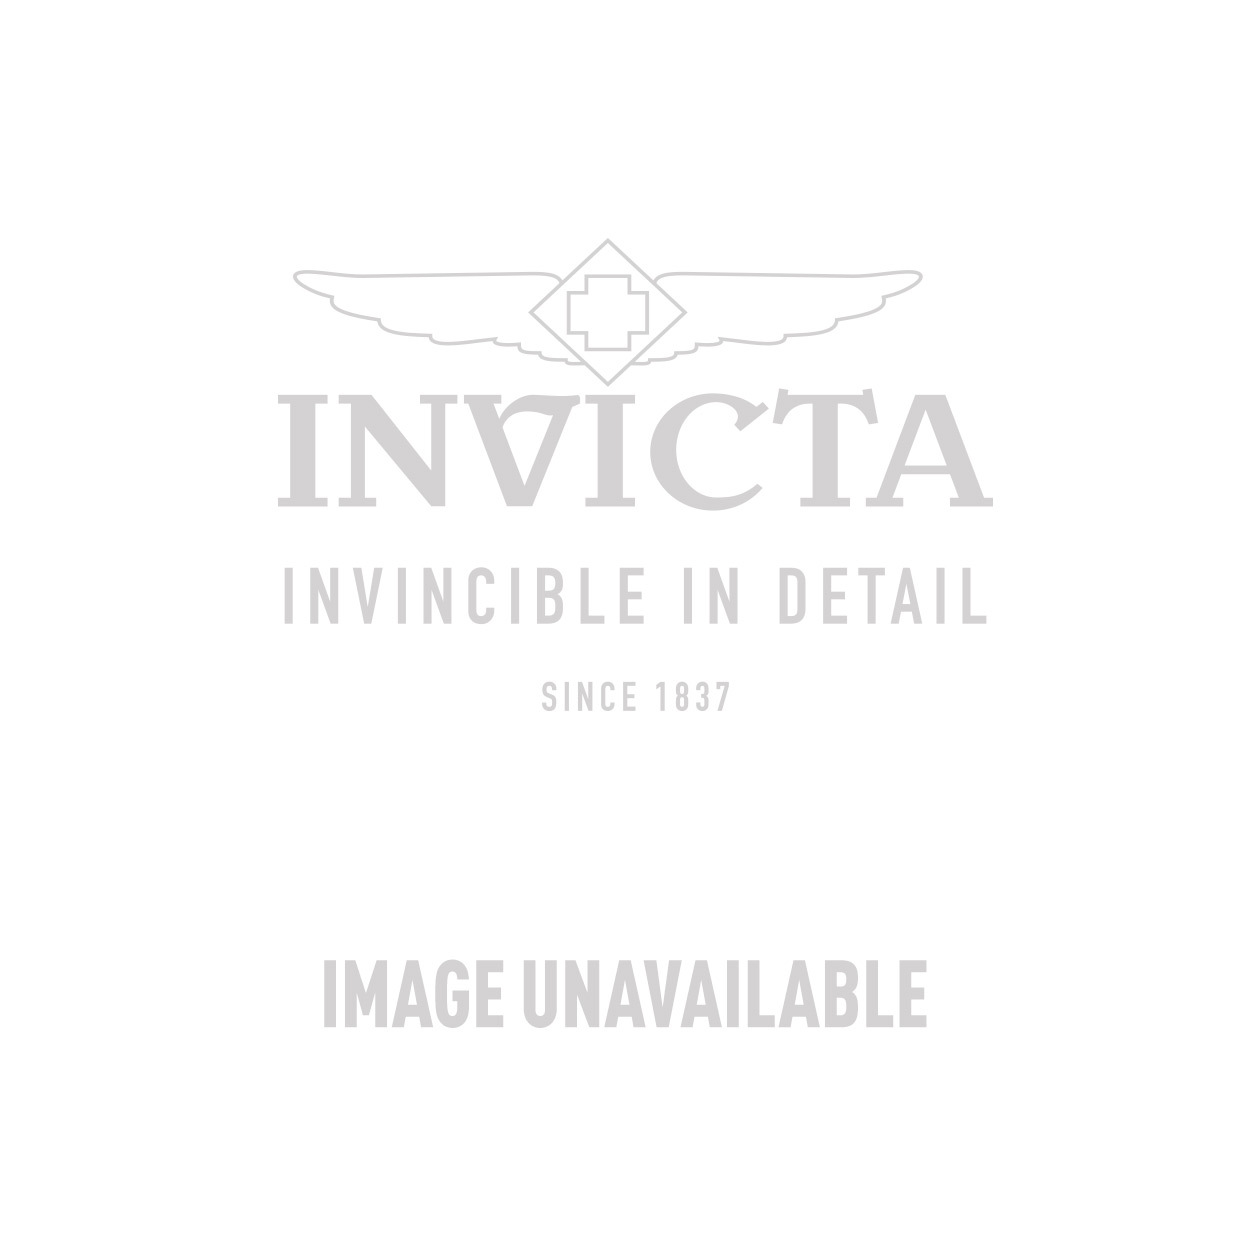 Invicta S. Coifman Swiss Movement Quartz Watch - Rose Gold case with Rose Gold tone Stainless Steel band - Model SC0339